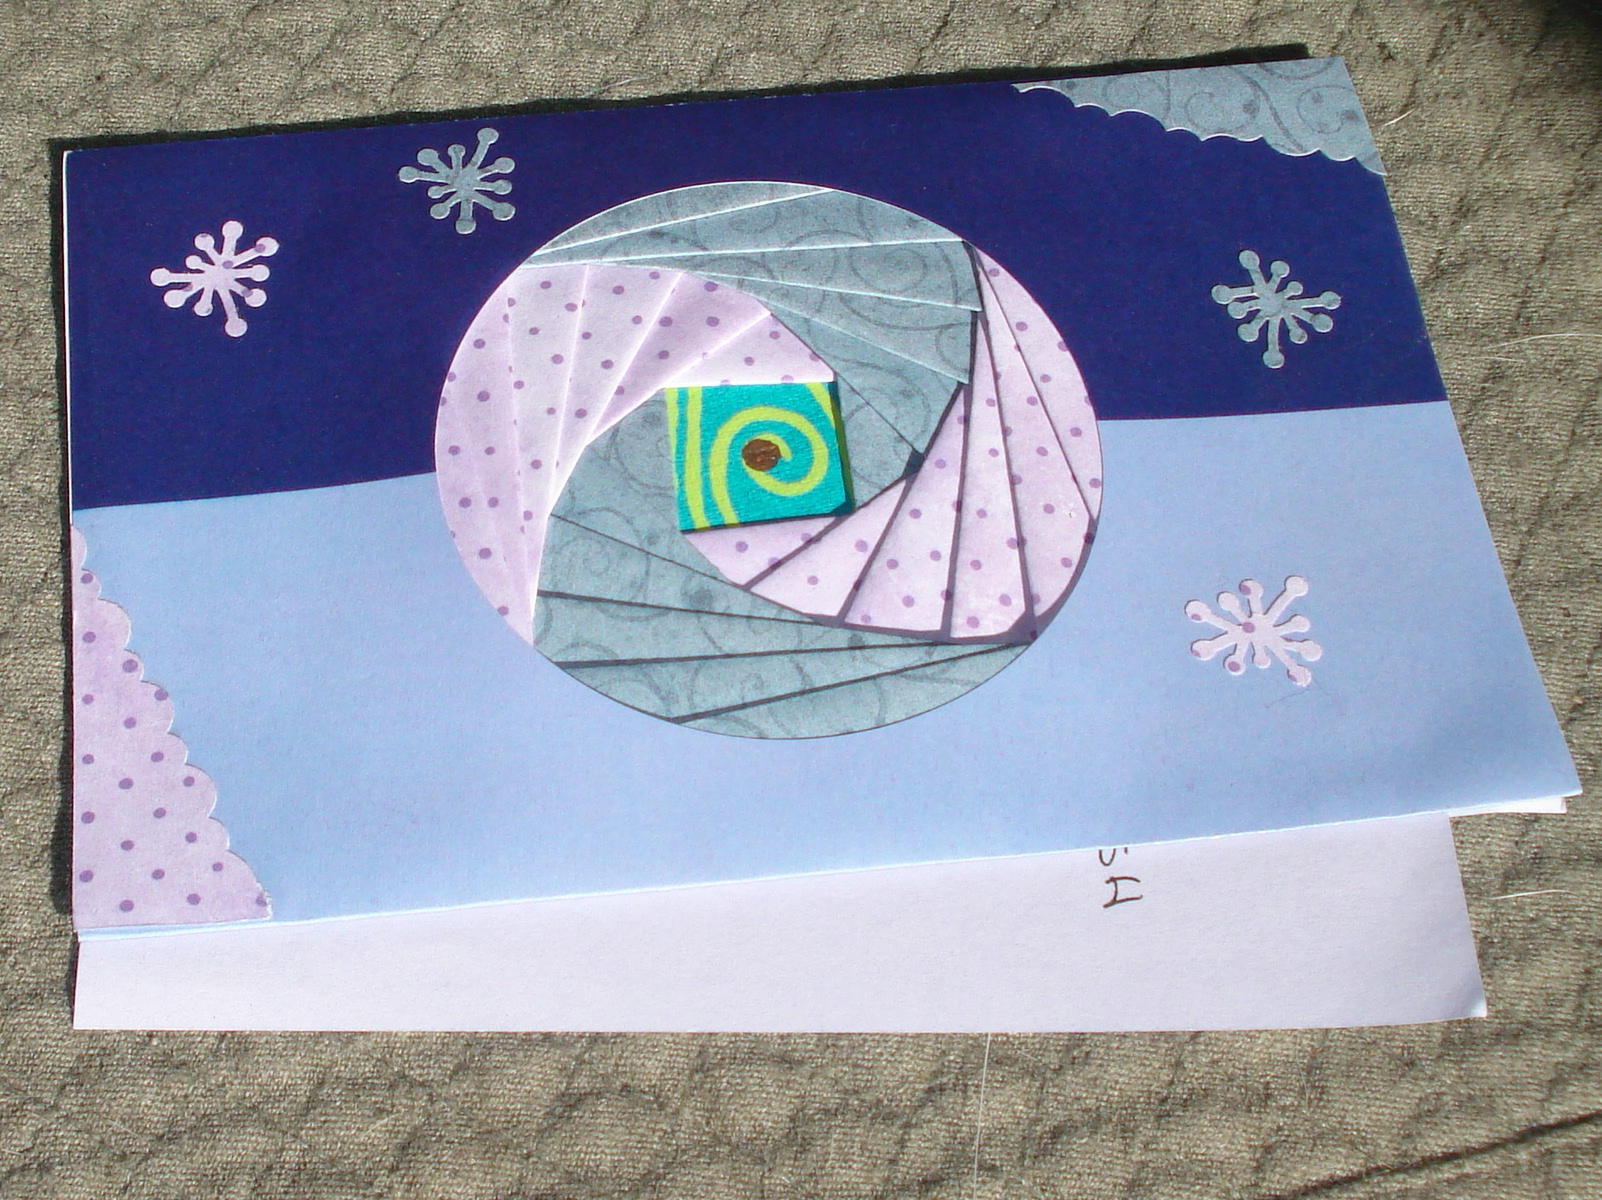 Diane's crafted card